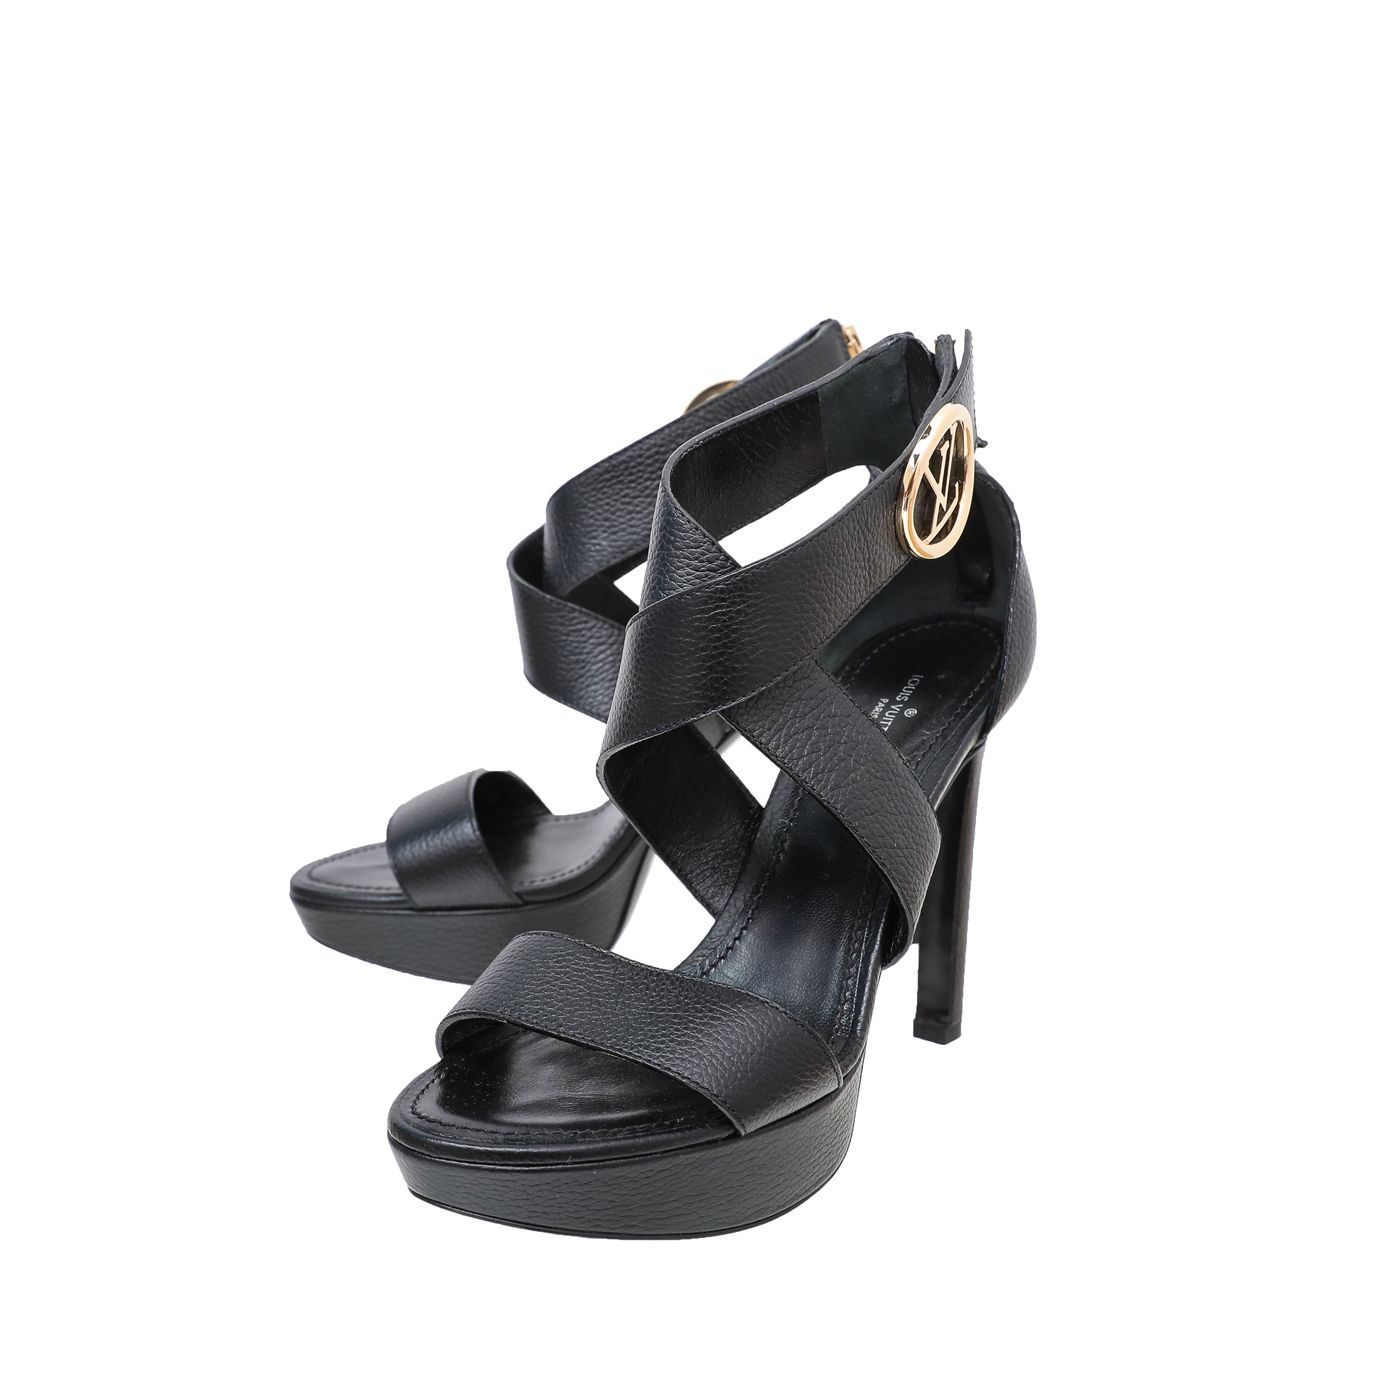 Louis Vuitton Black Horizon Platform Sandals 38